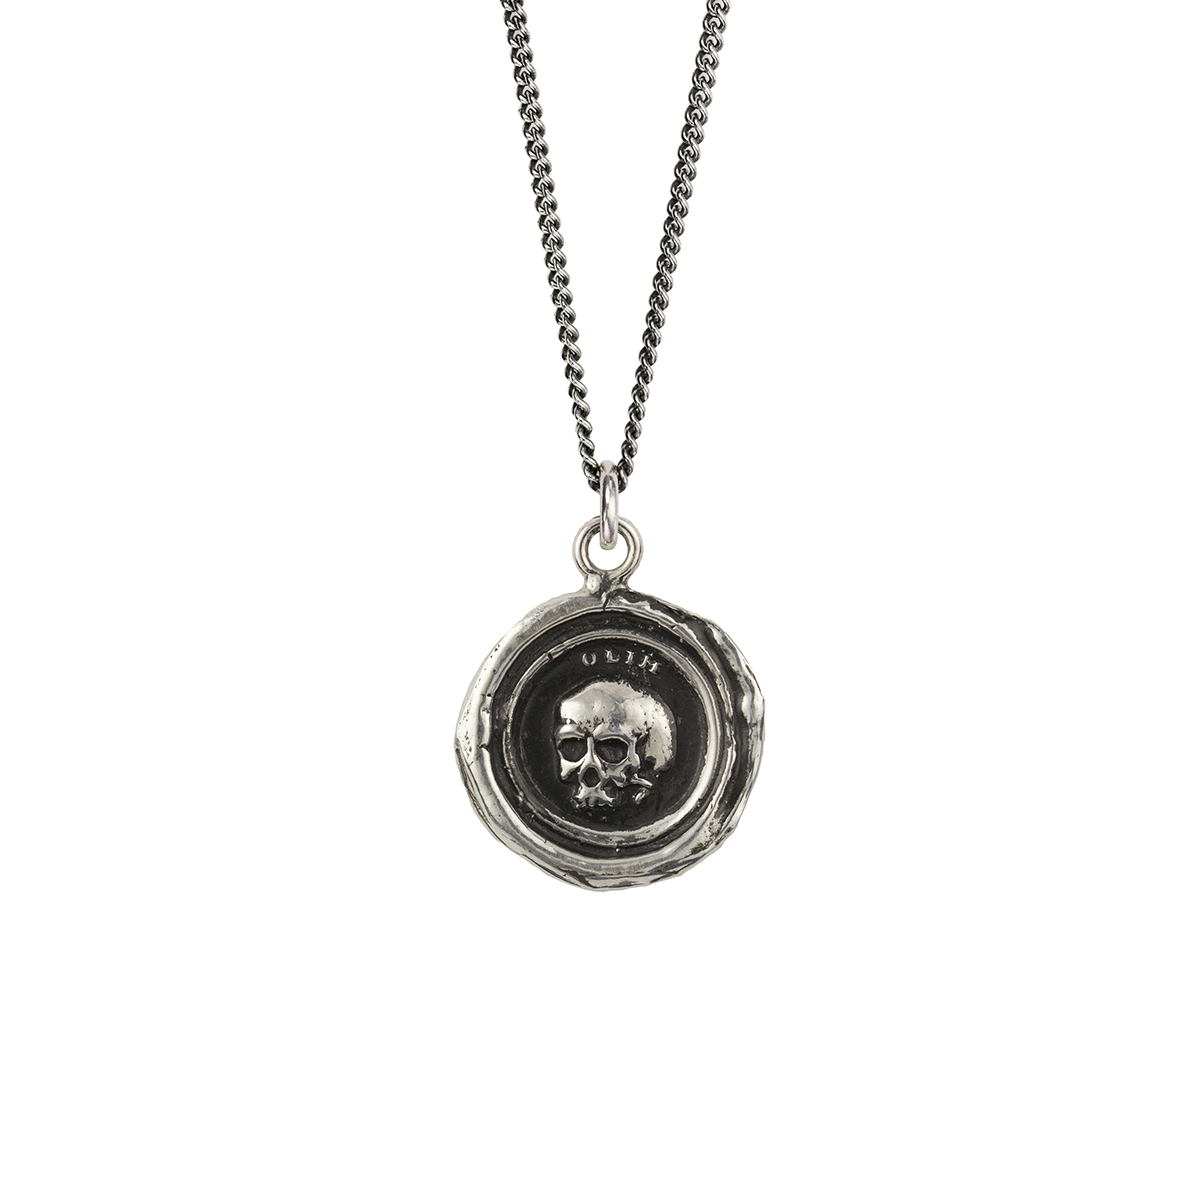 What Once Was - This talisman reads 'Olim' in Latin, which means 'Once'. The skull, a classic memento mori, is a reminder that life is fleeting.